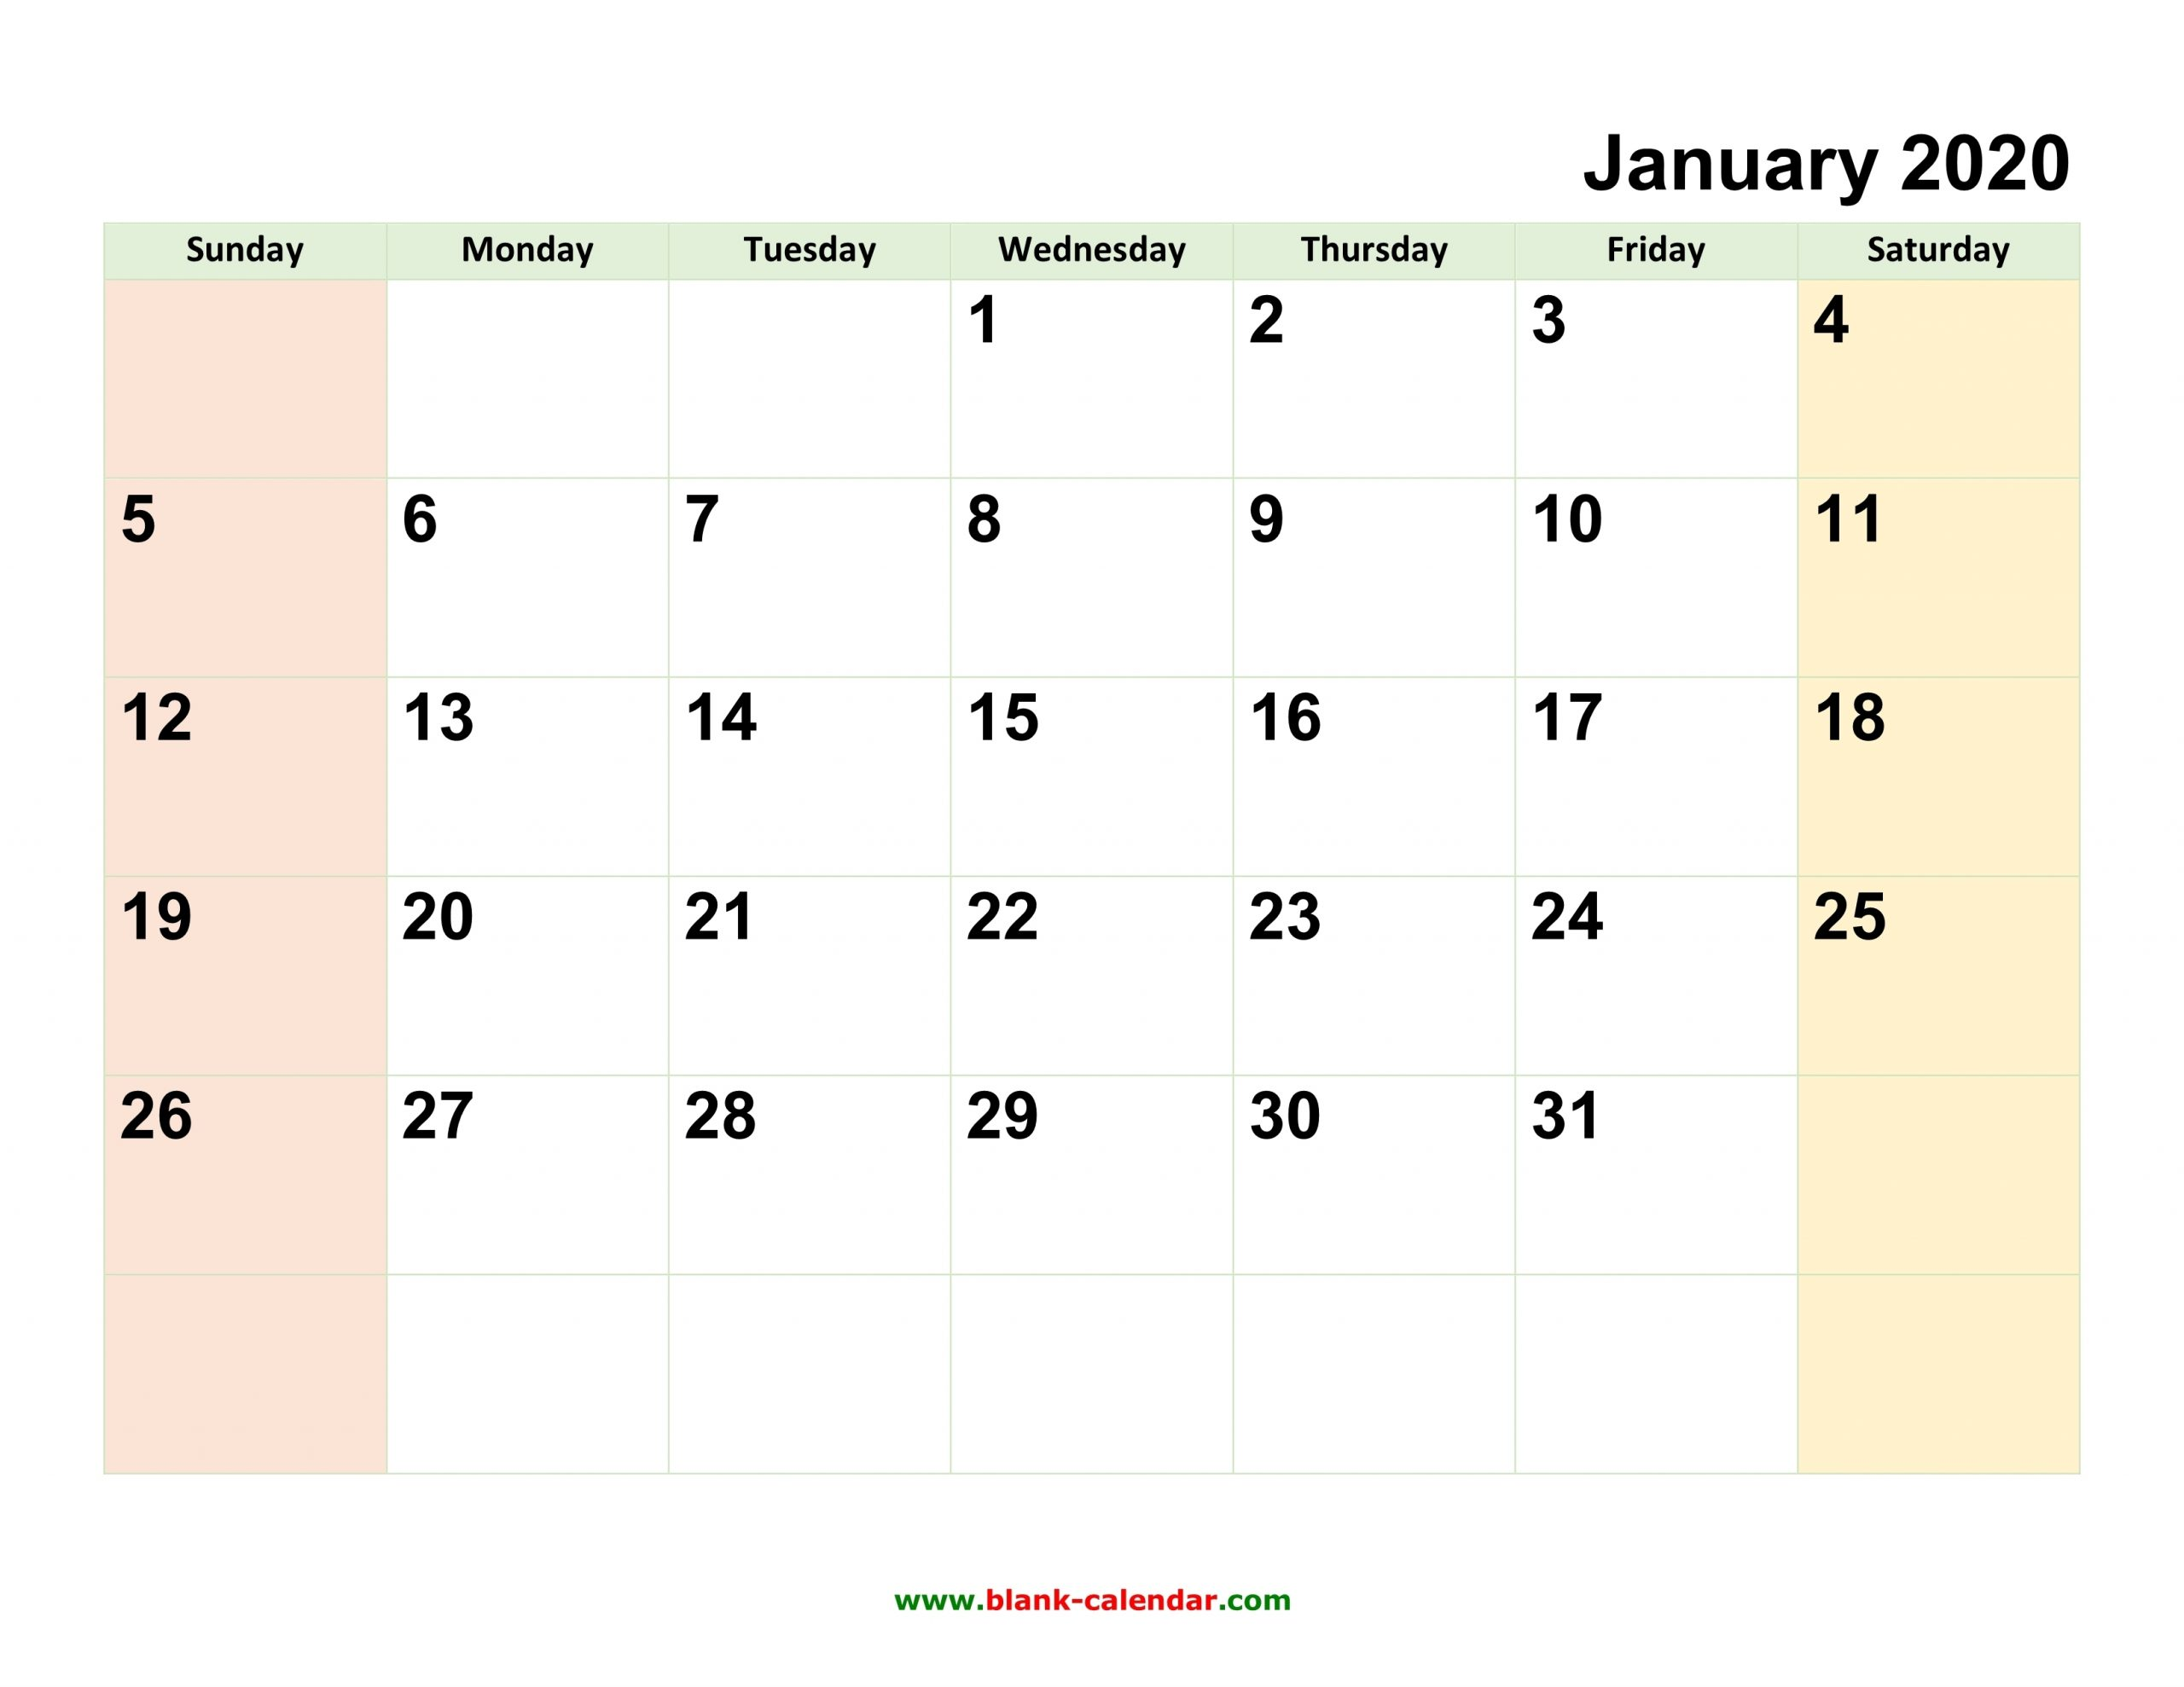 Monthly Calendar 2020 | Free Download, Editable And Printable intended for Google 2020 Calendar Template Editable